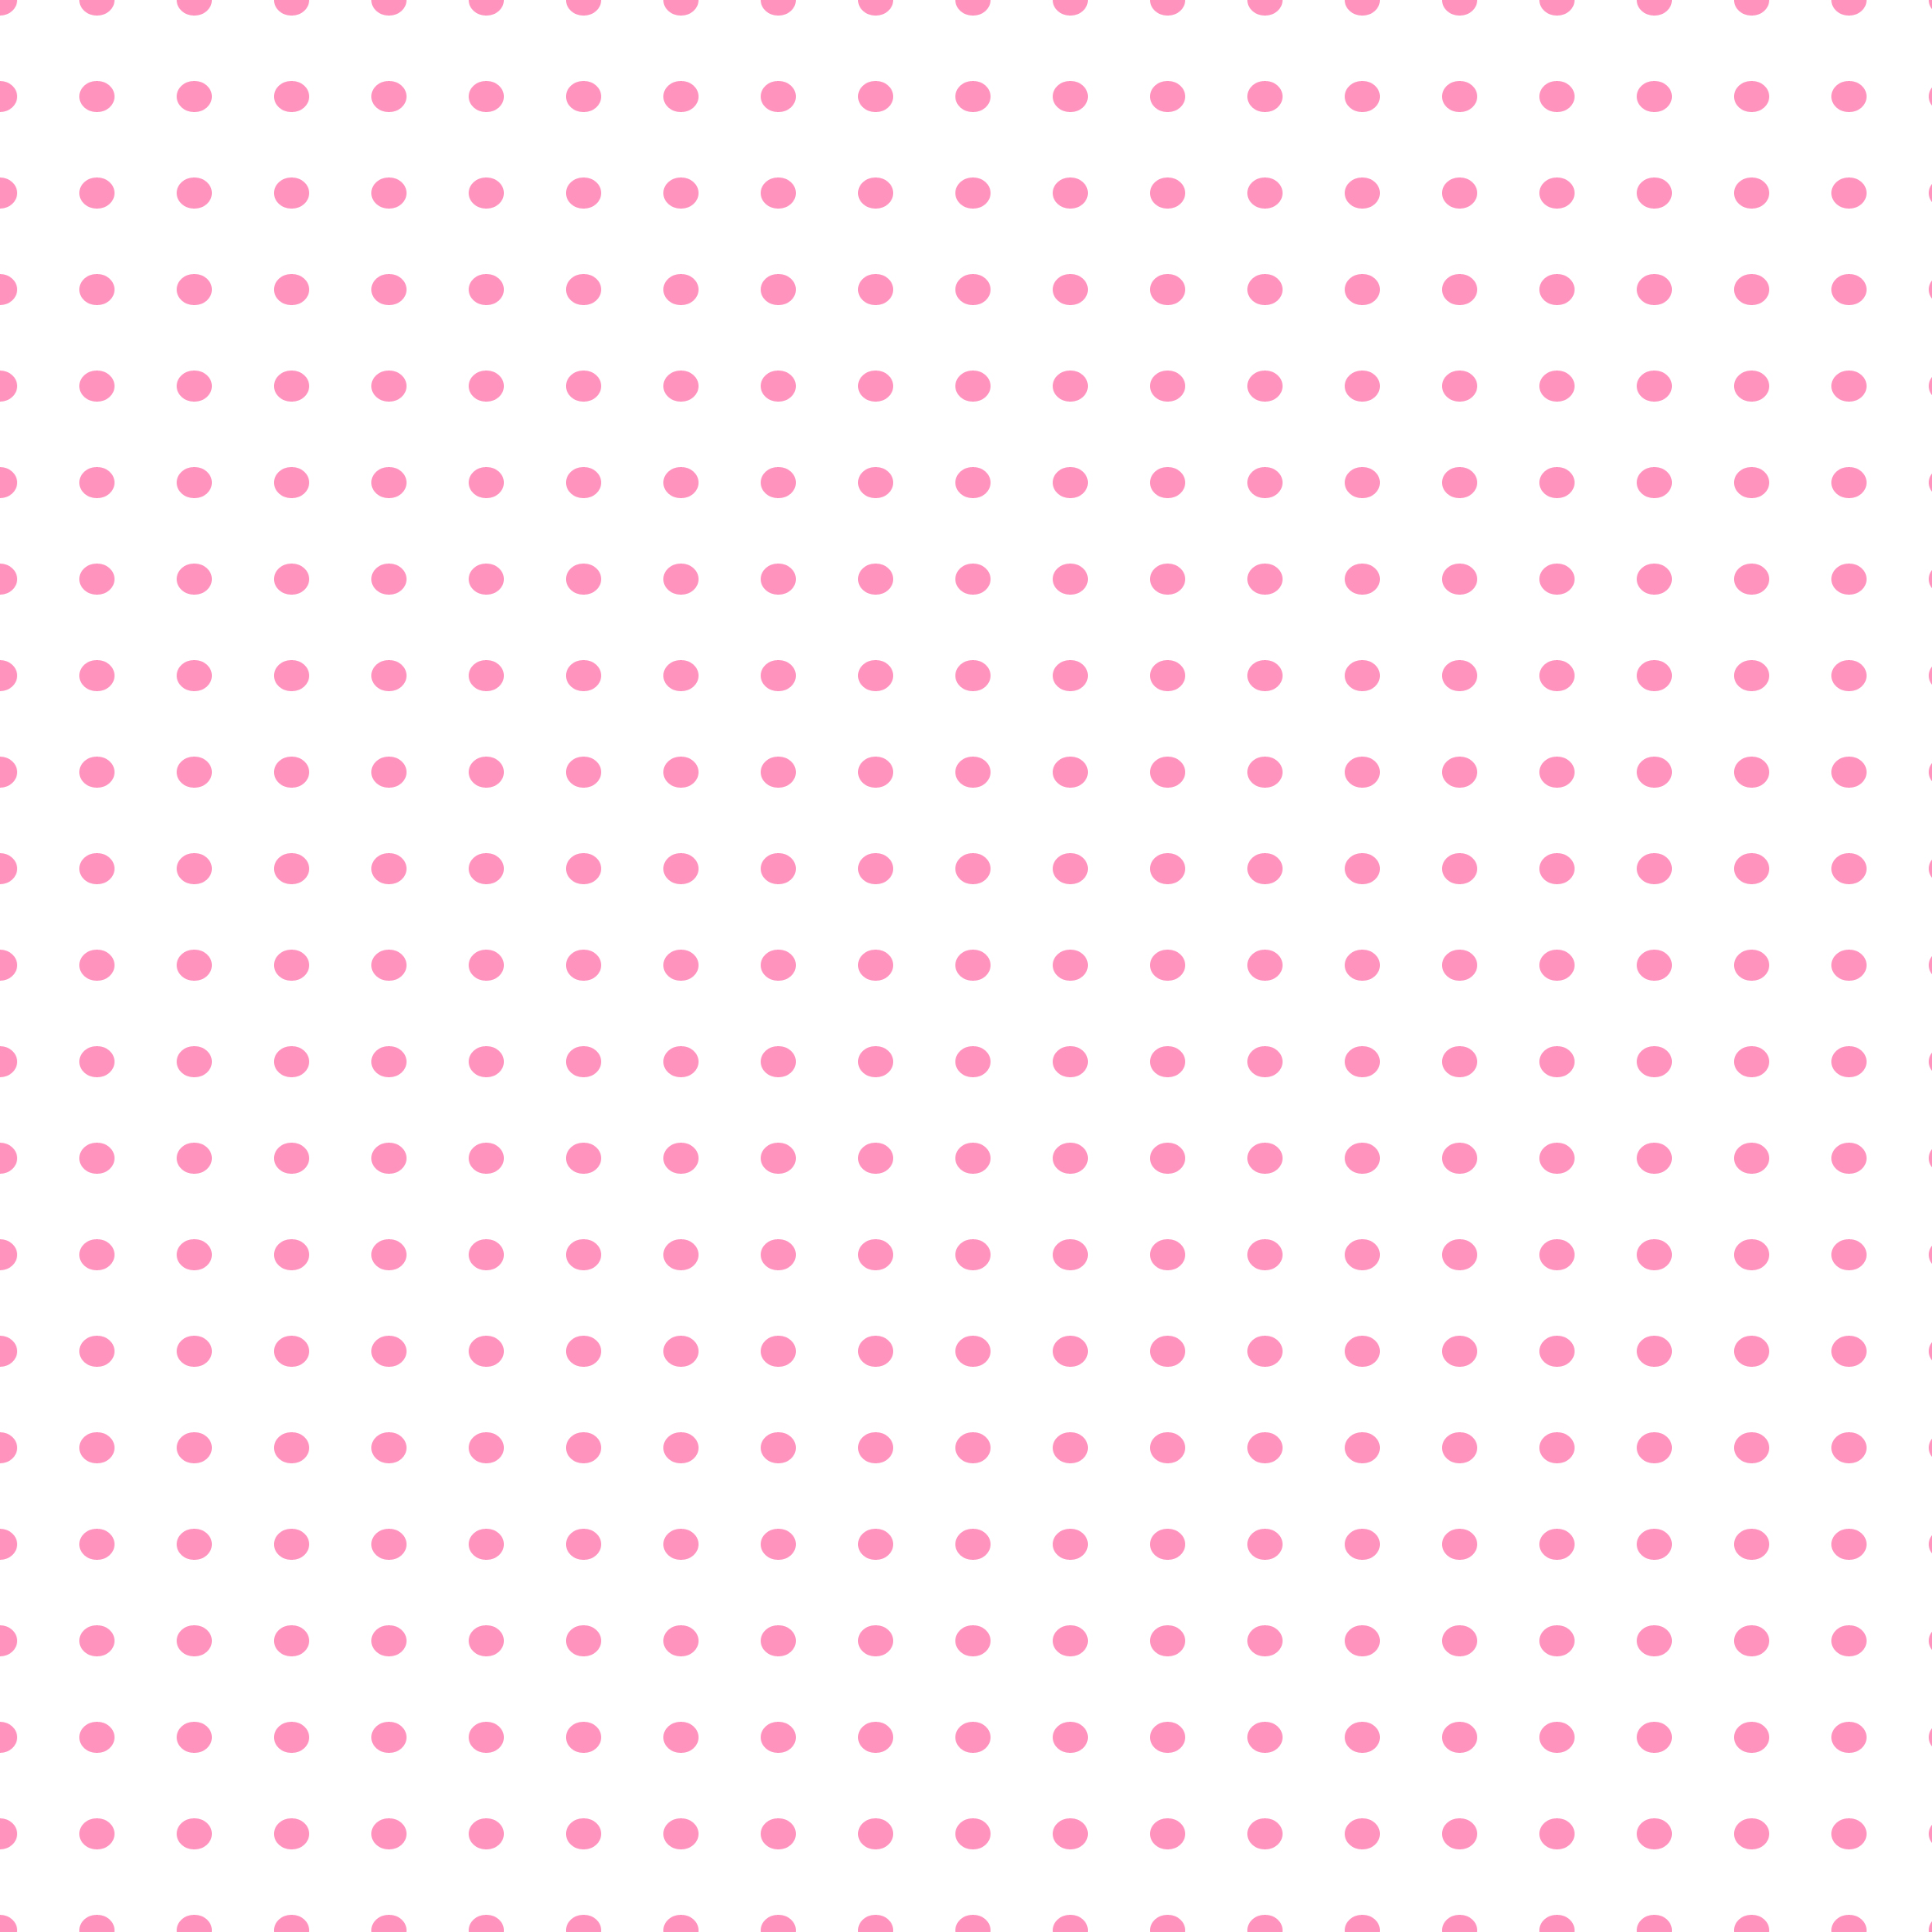 Dots clipart pink Download Free Art Free on